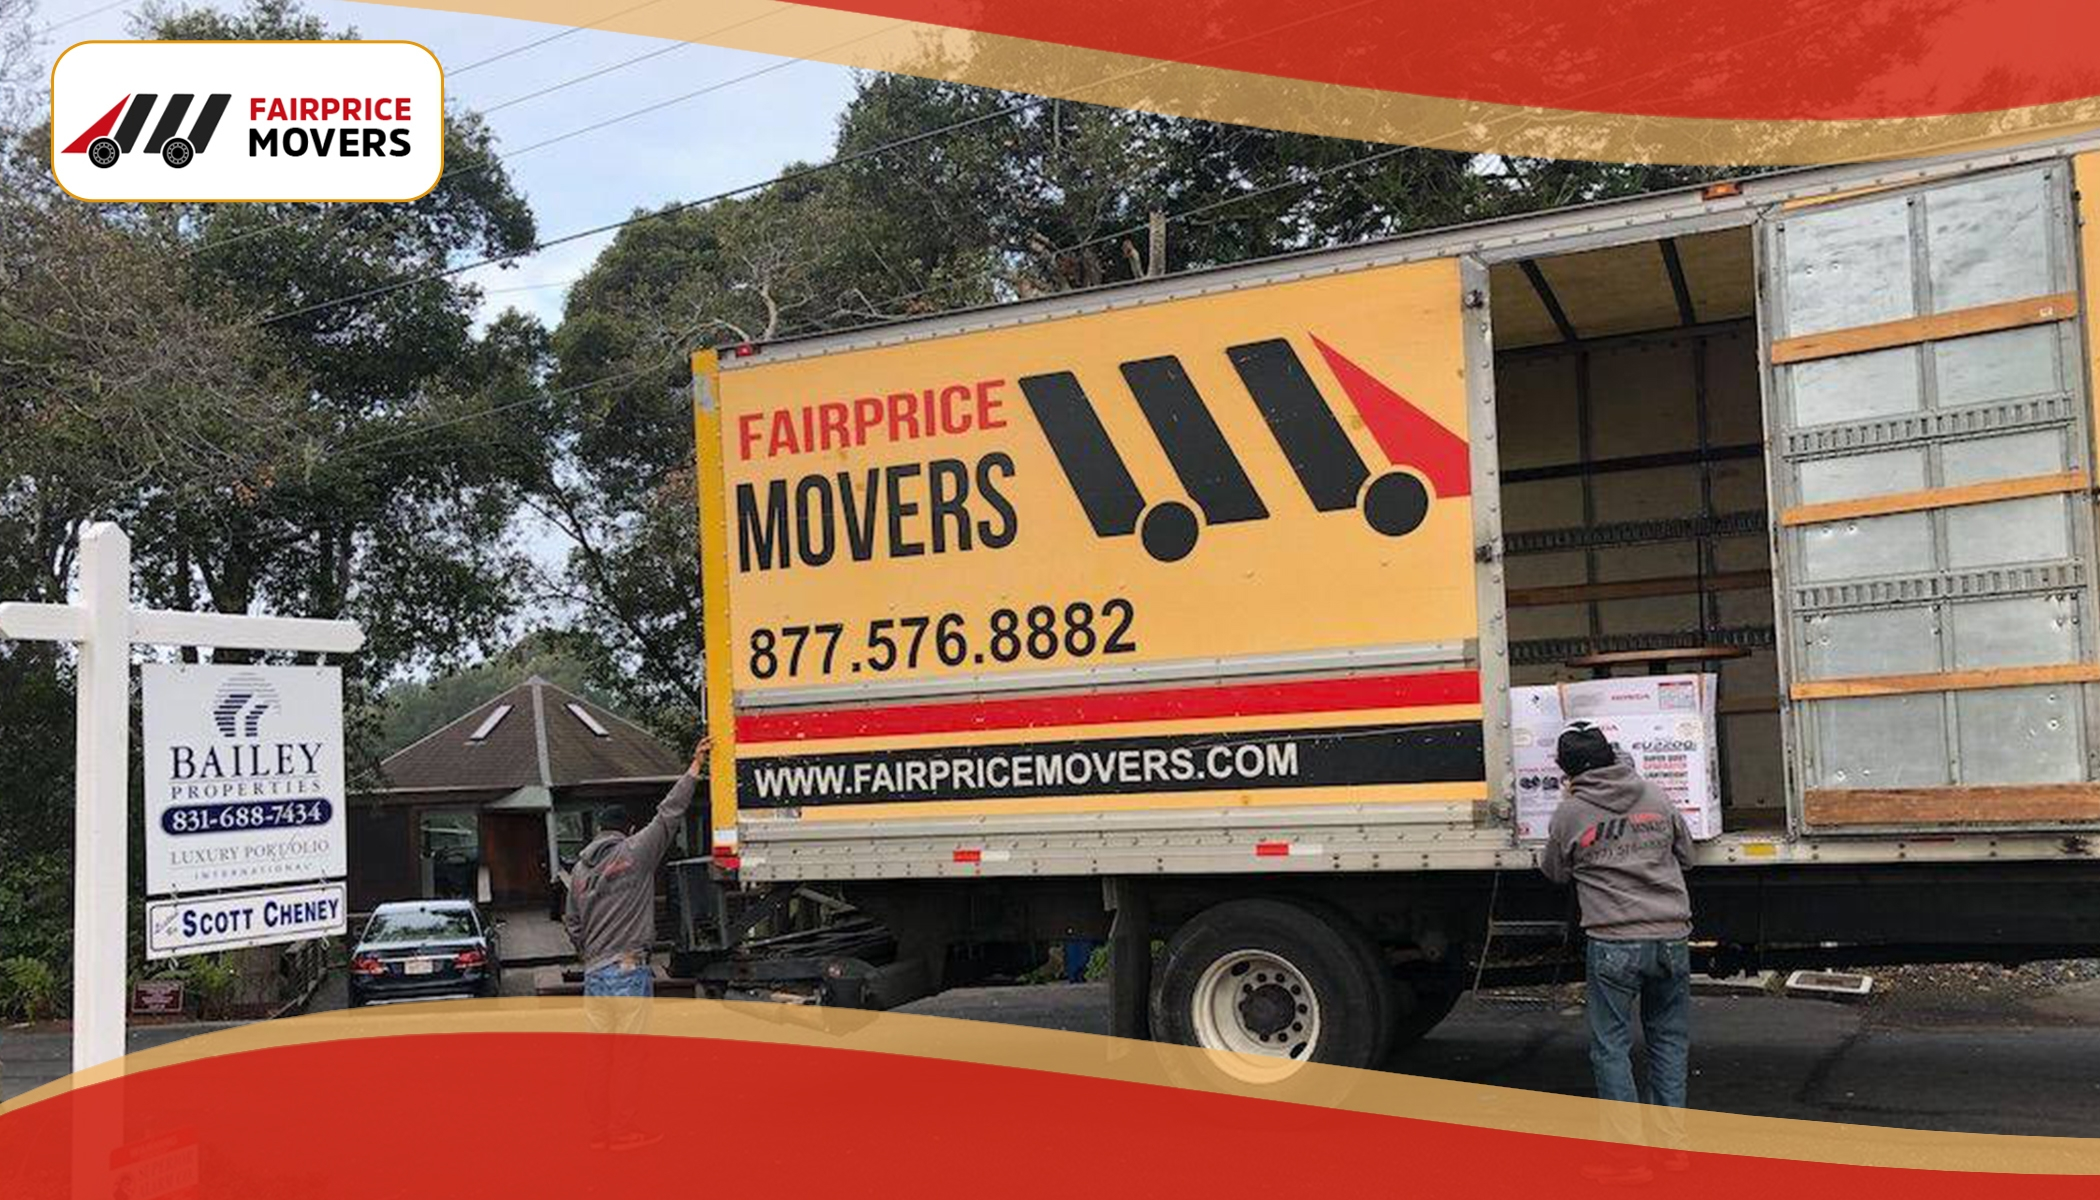 Fairprice Movers (@fairpricemovers) Cover Image